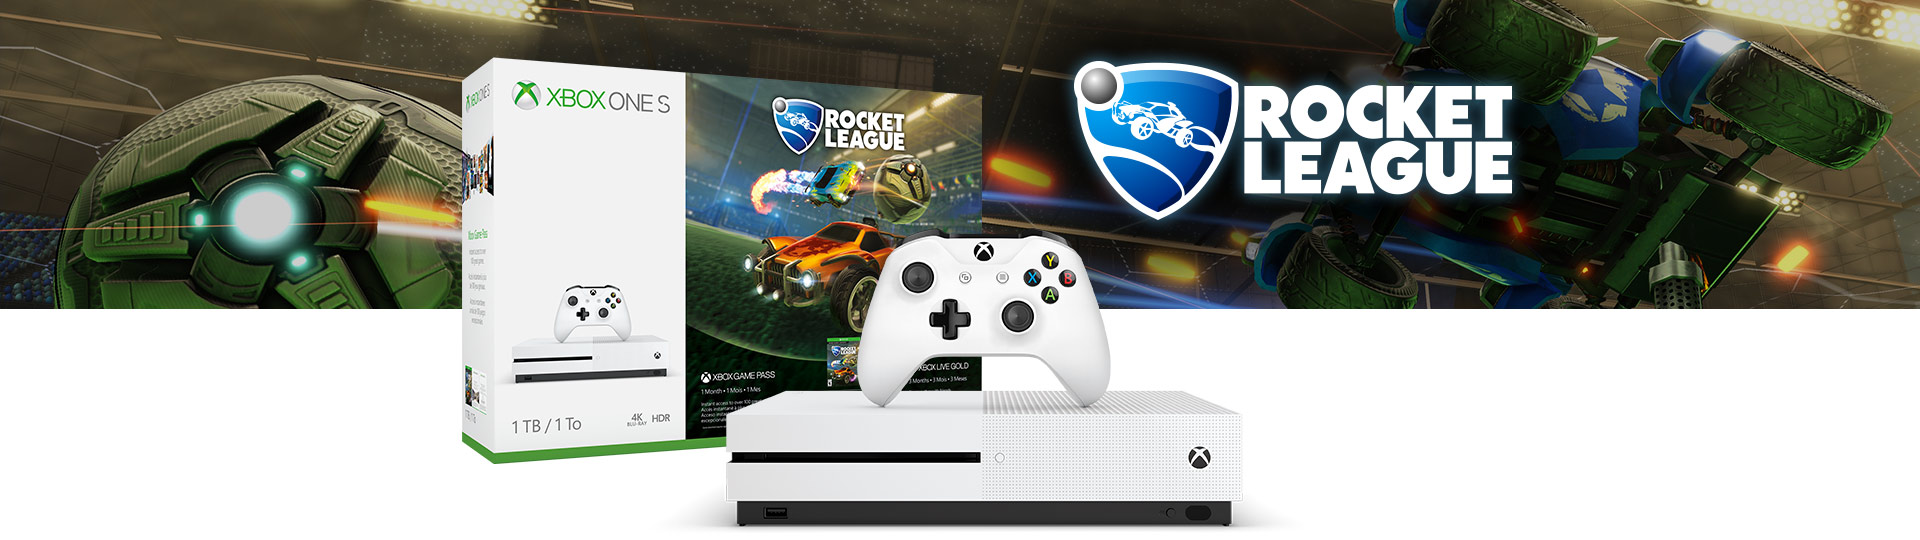 Xbox One S Rocket League Blast-Off-paket 1 terabyte